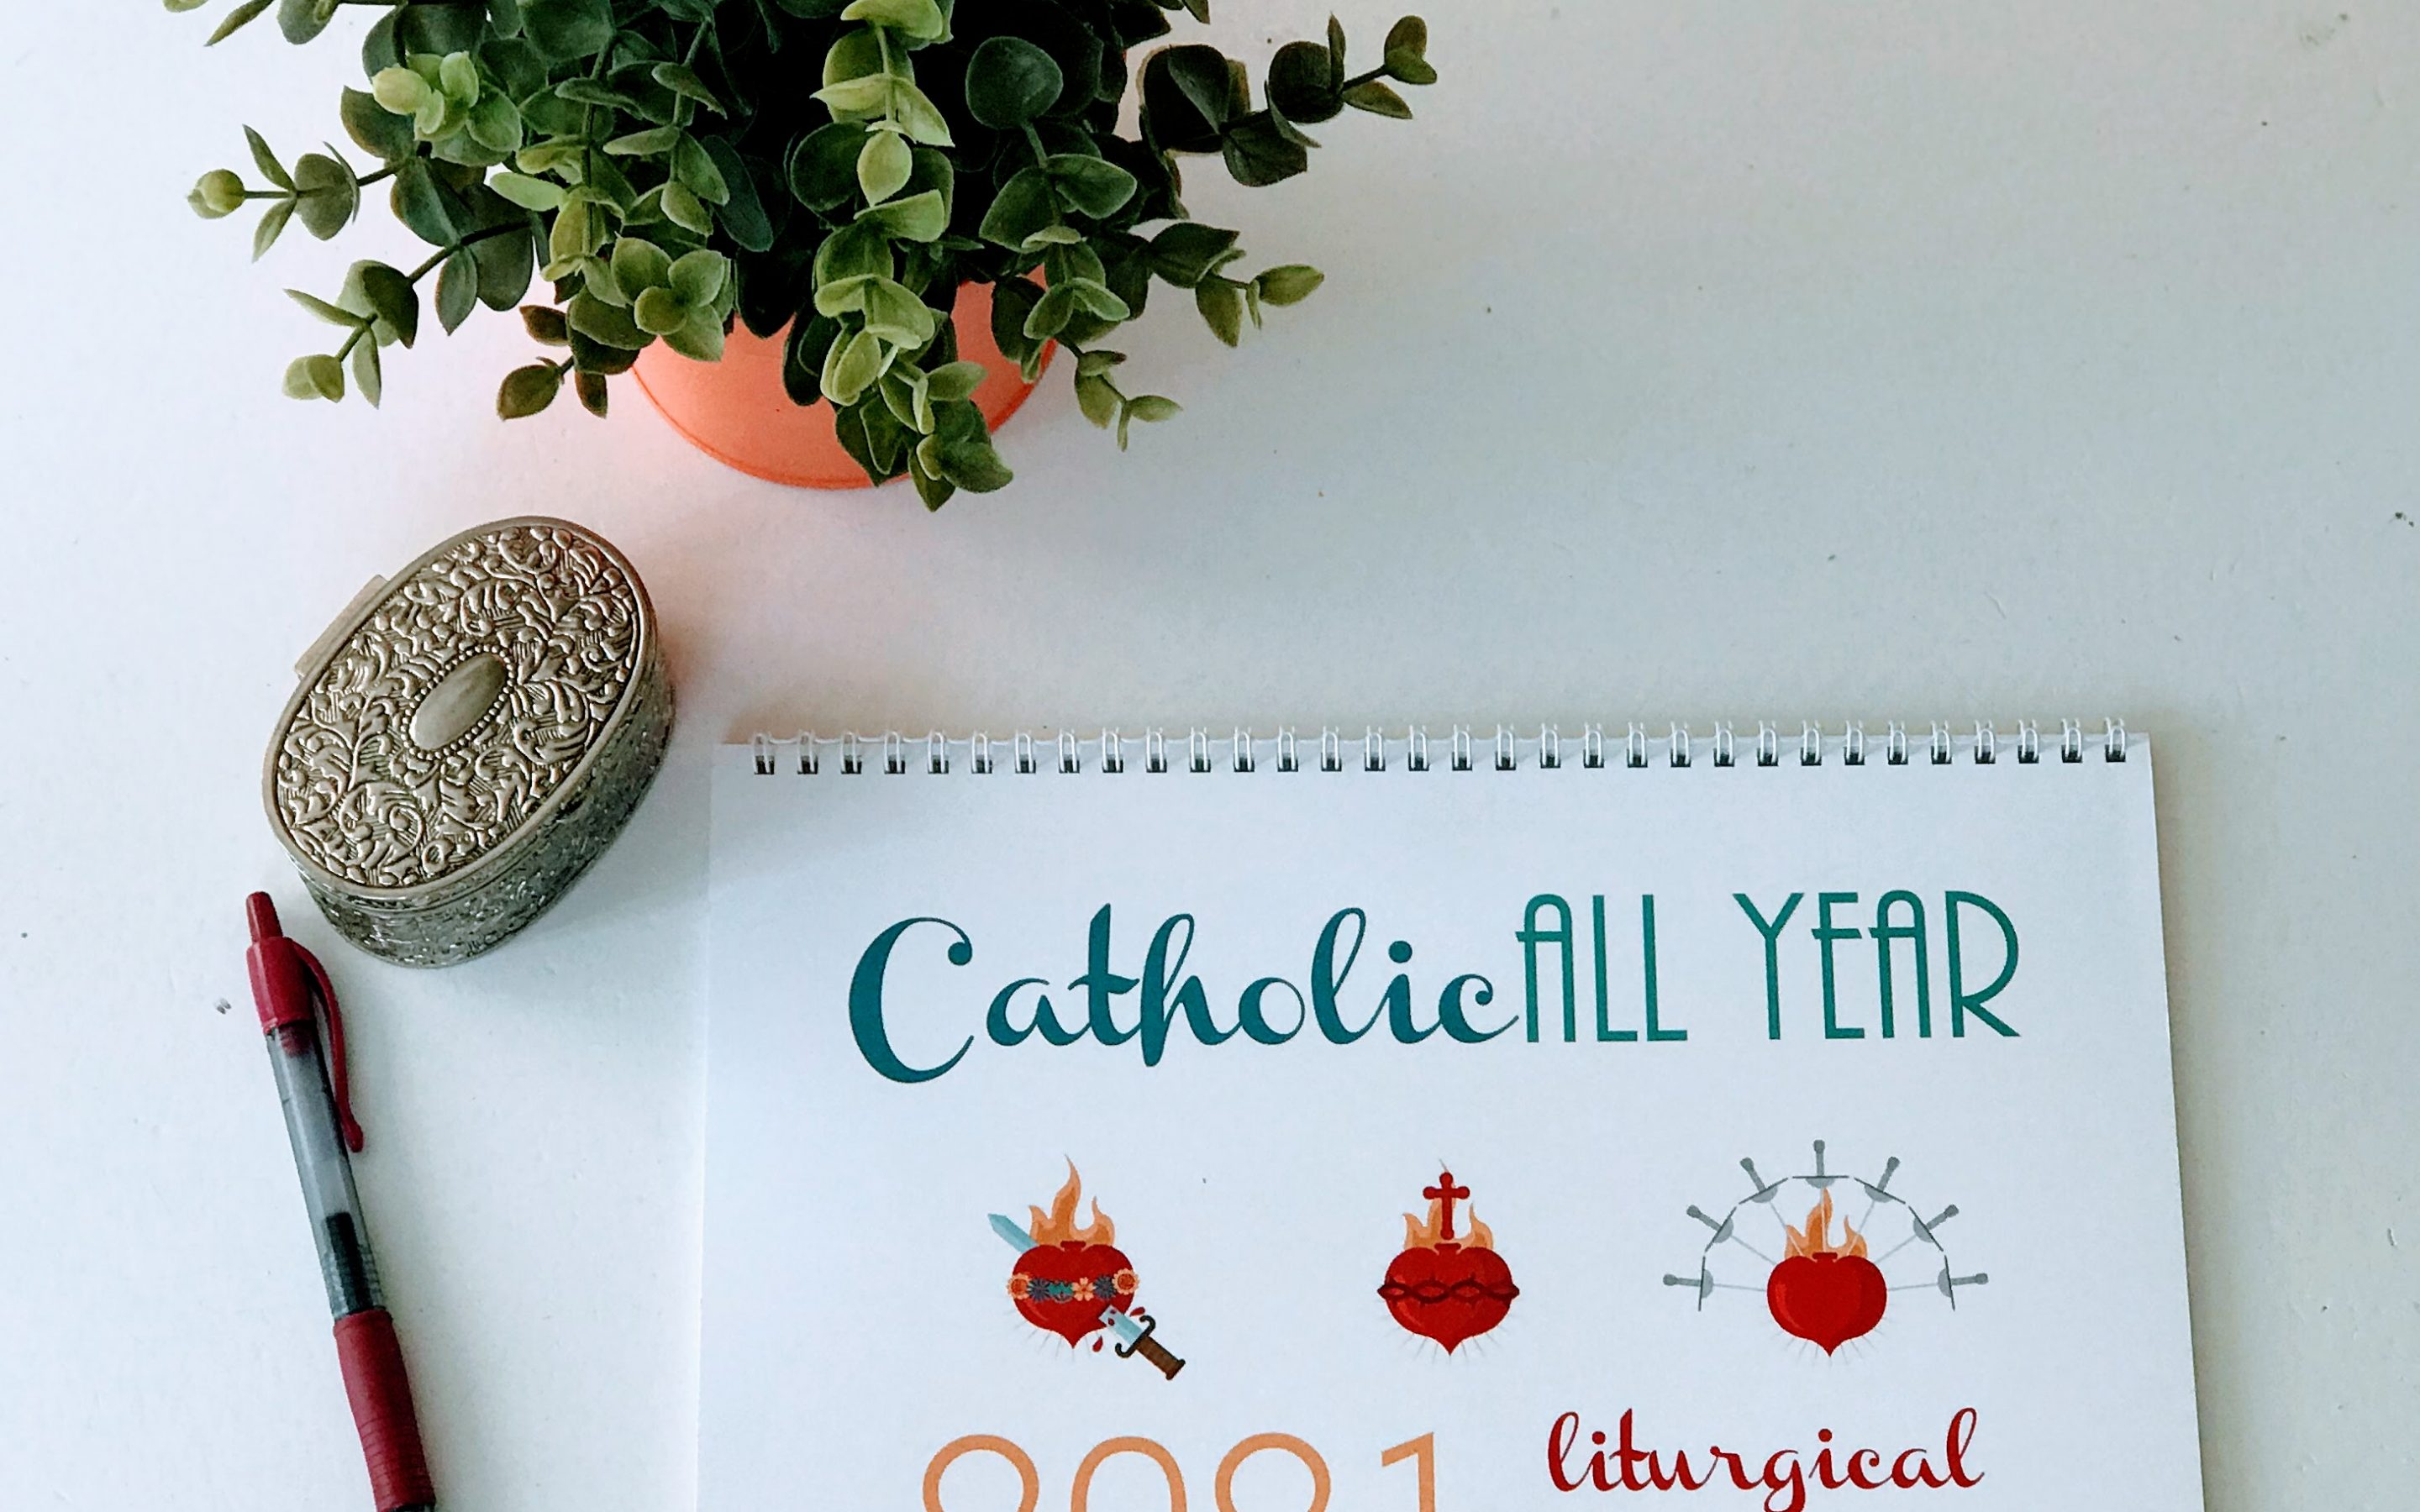 Catholic All Year 2021 Liturgical Calendar with Monthly Devotion Art *digital download*